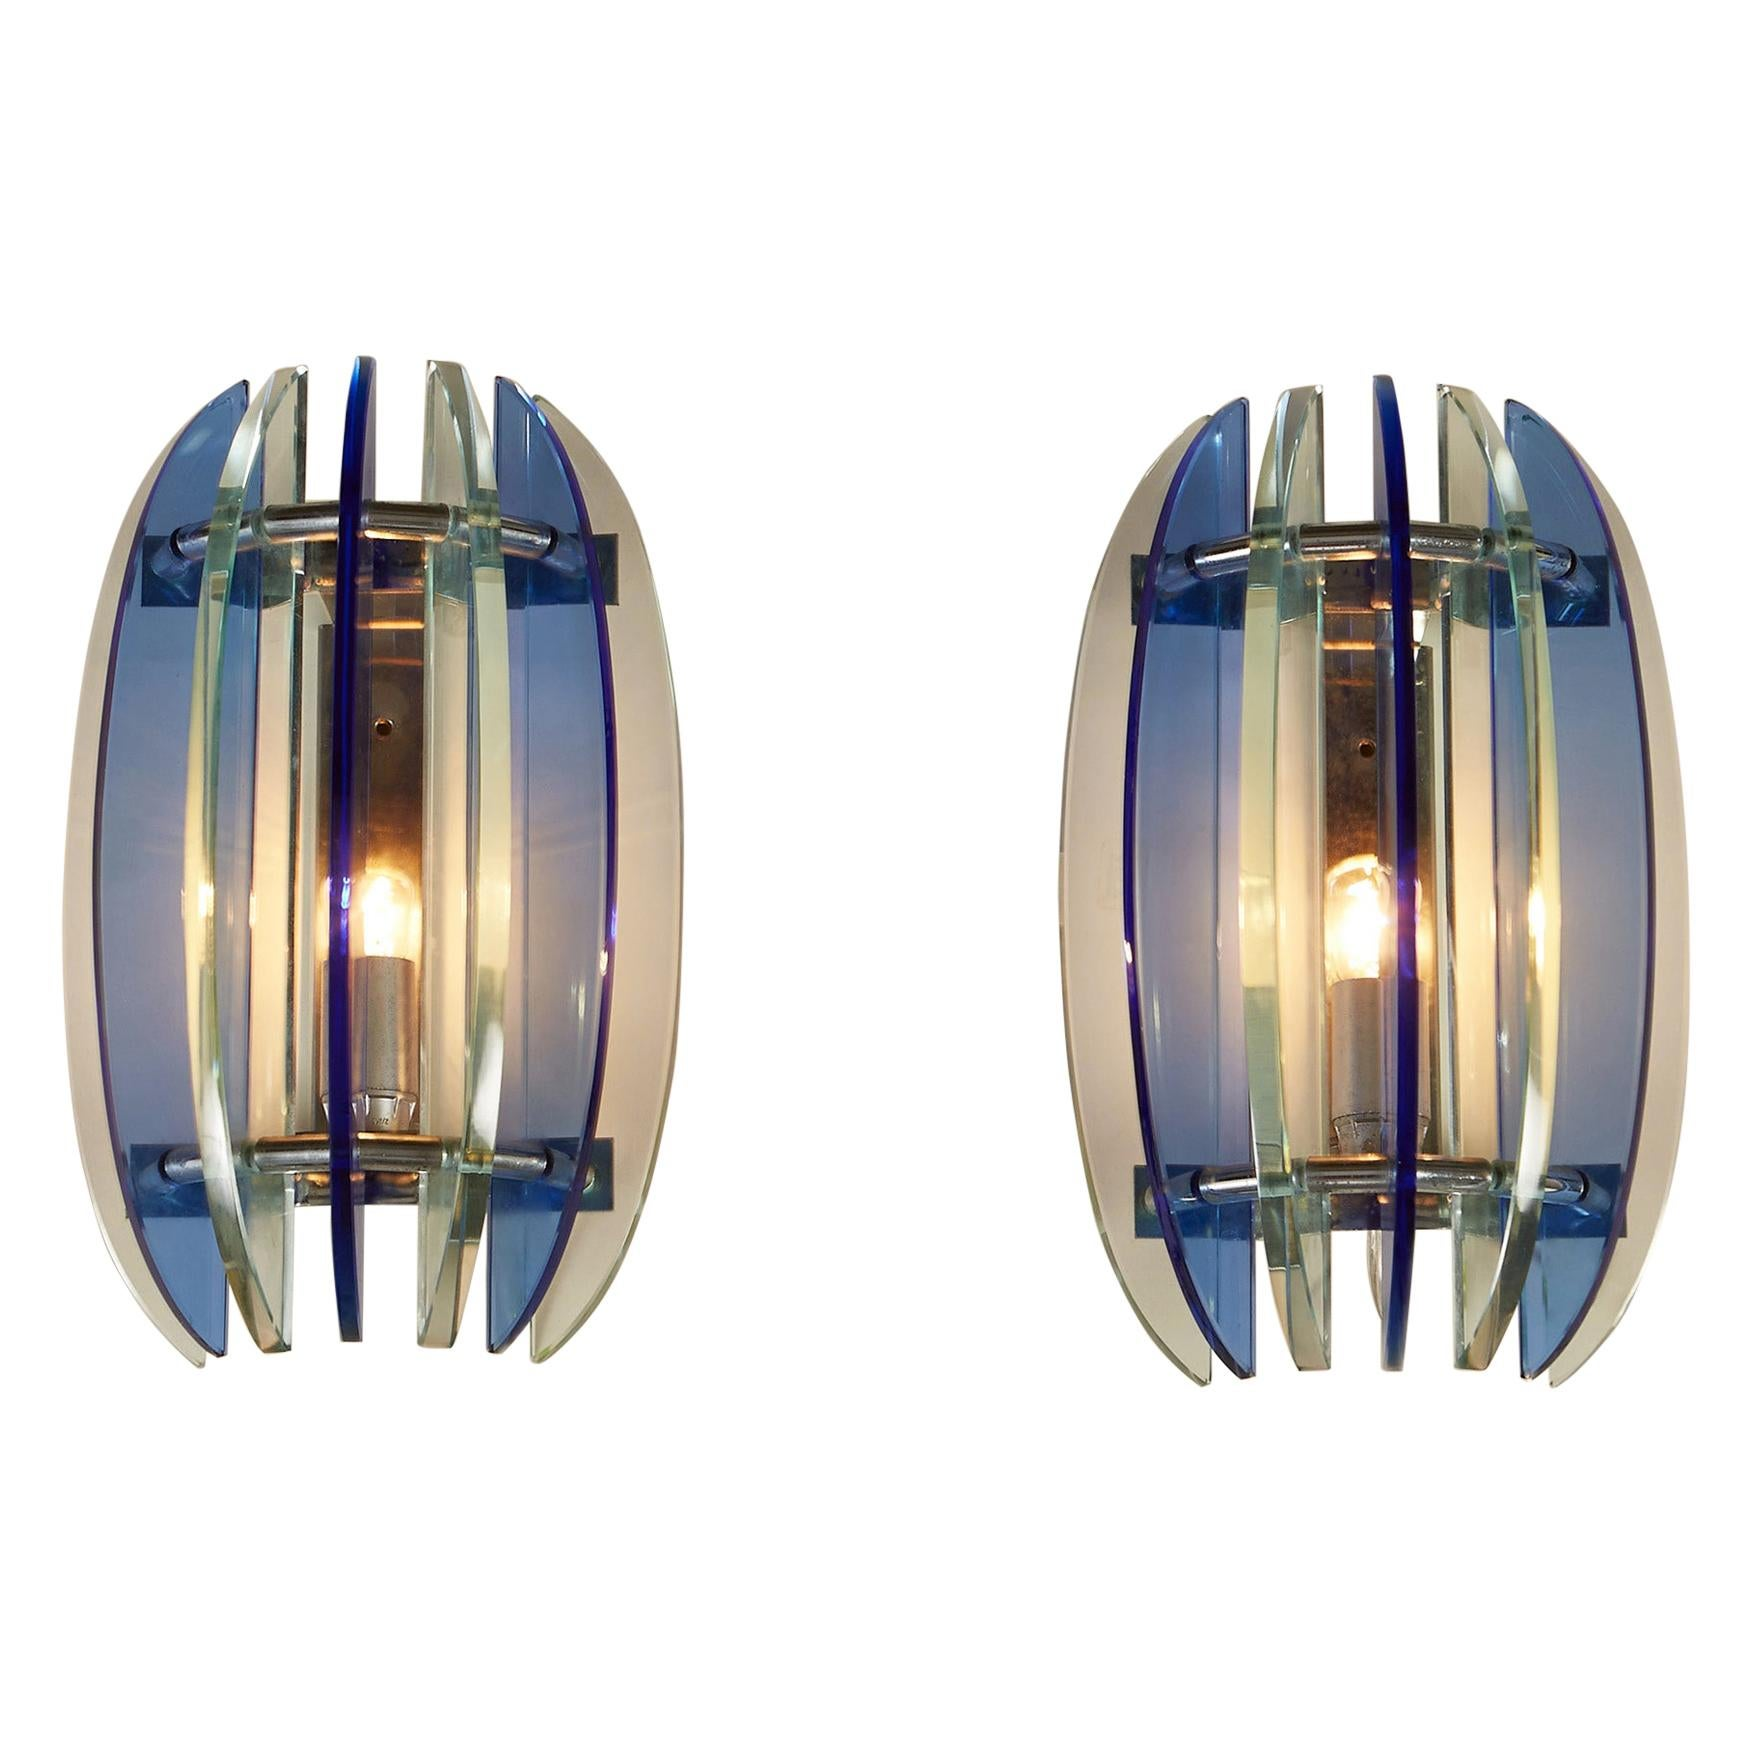 Pair of 1970s Italian Chrome and Blue and Greenglass Wall Lights by Veca